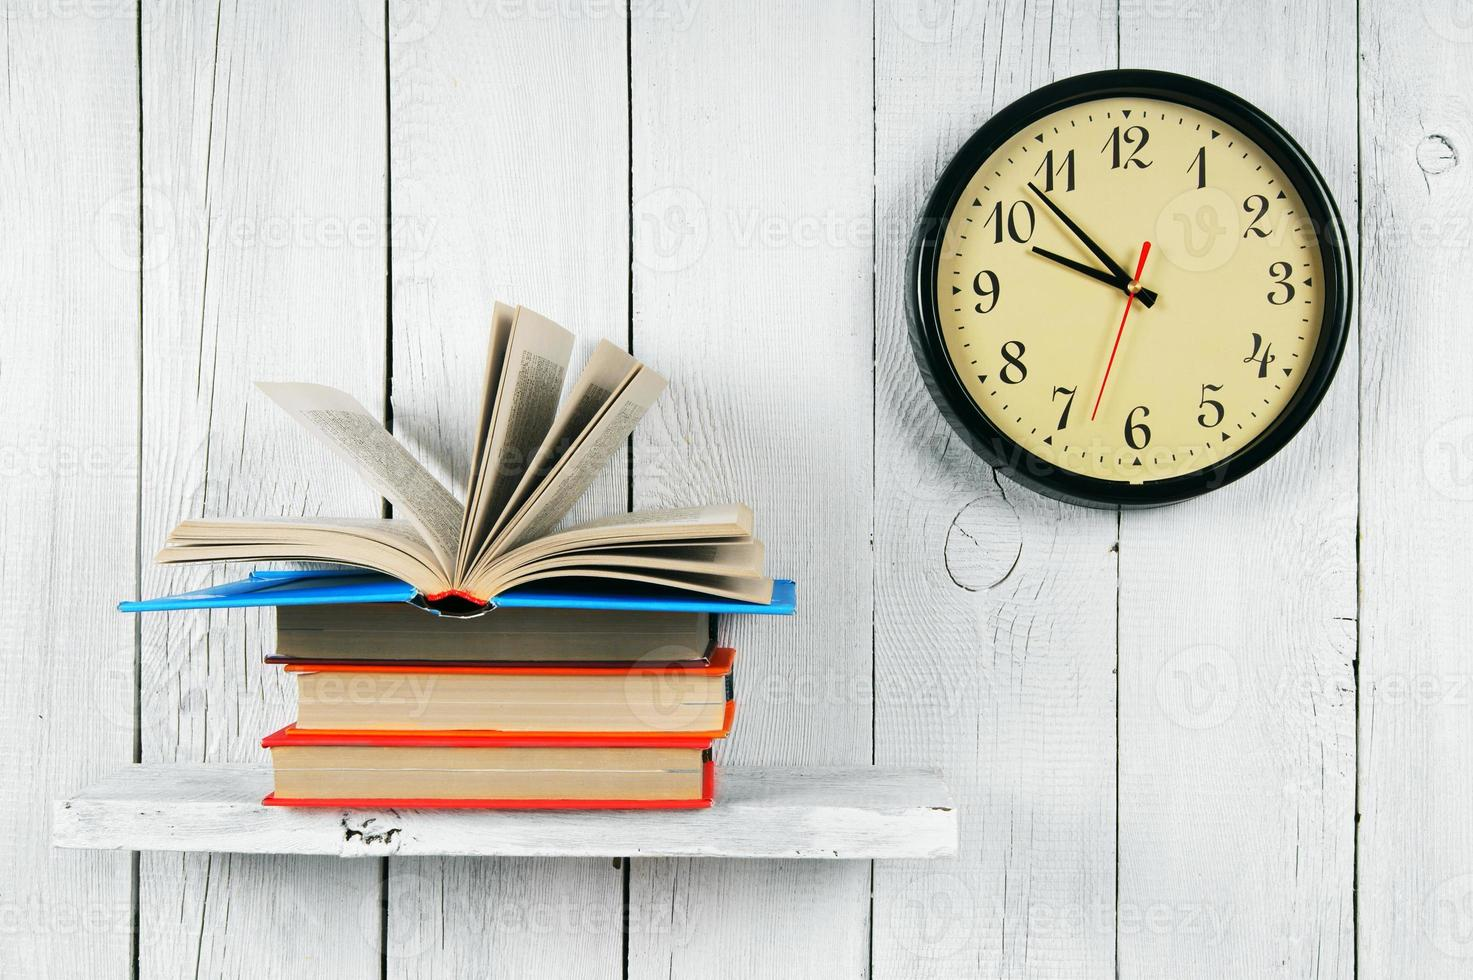 The open book on a wooden shelf and watches. photo